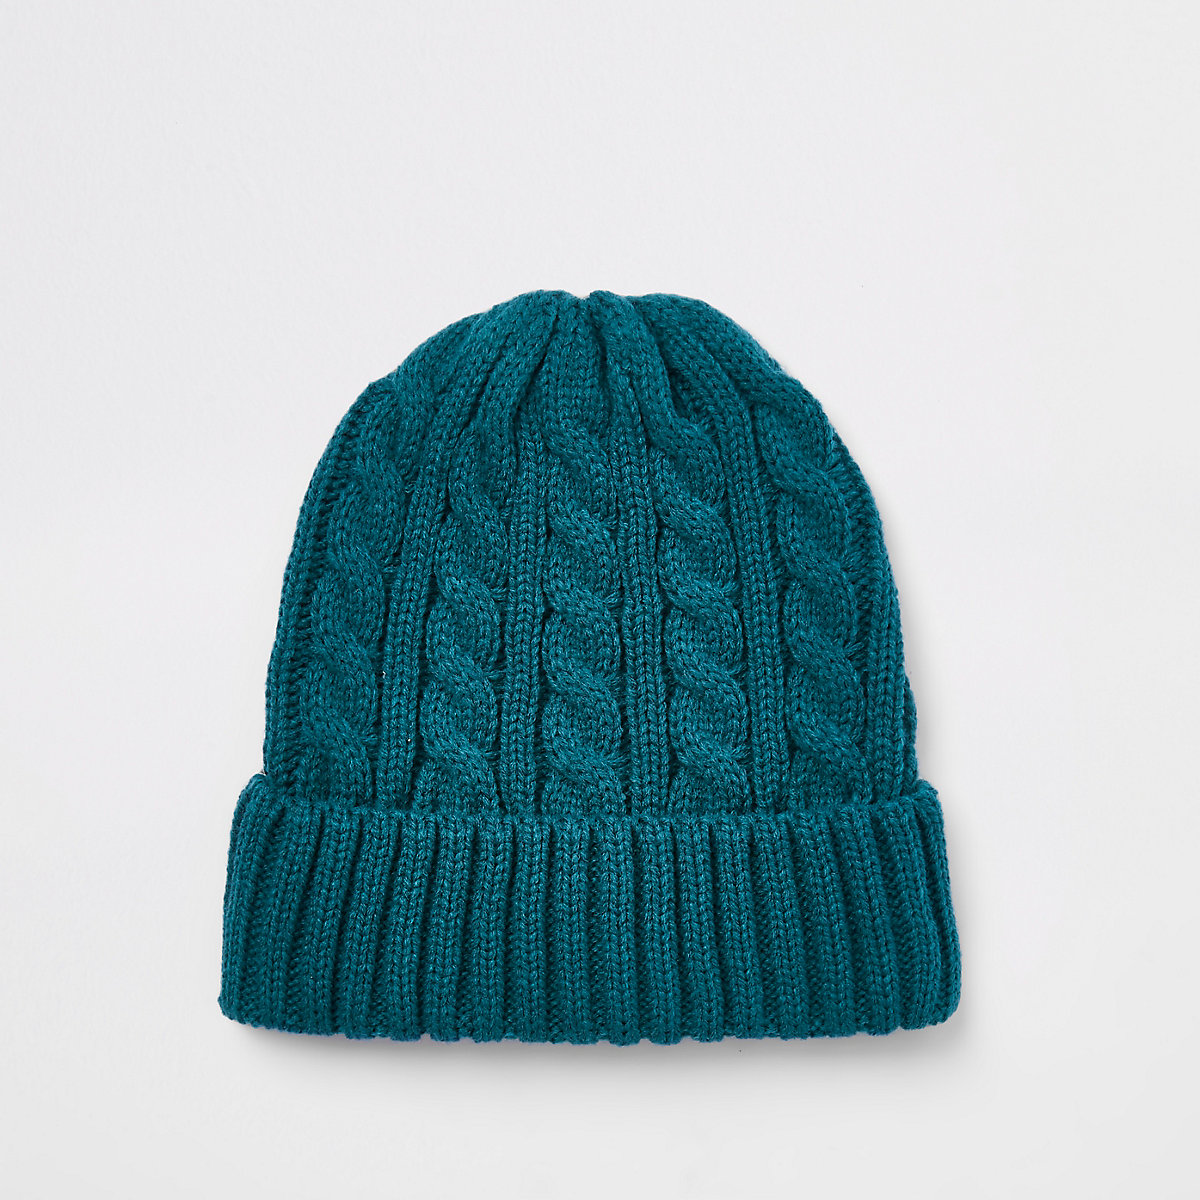 Blue cable knit fisherman beanie hat